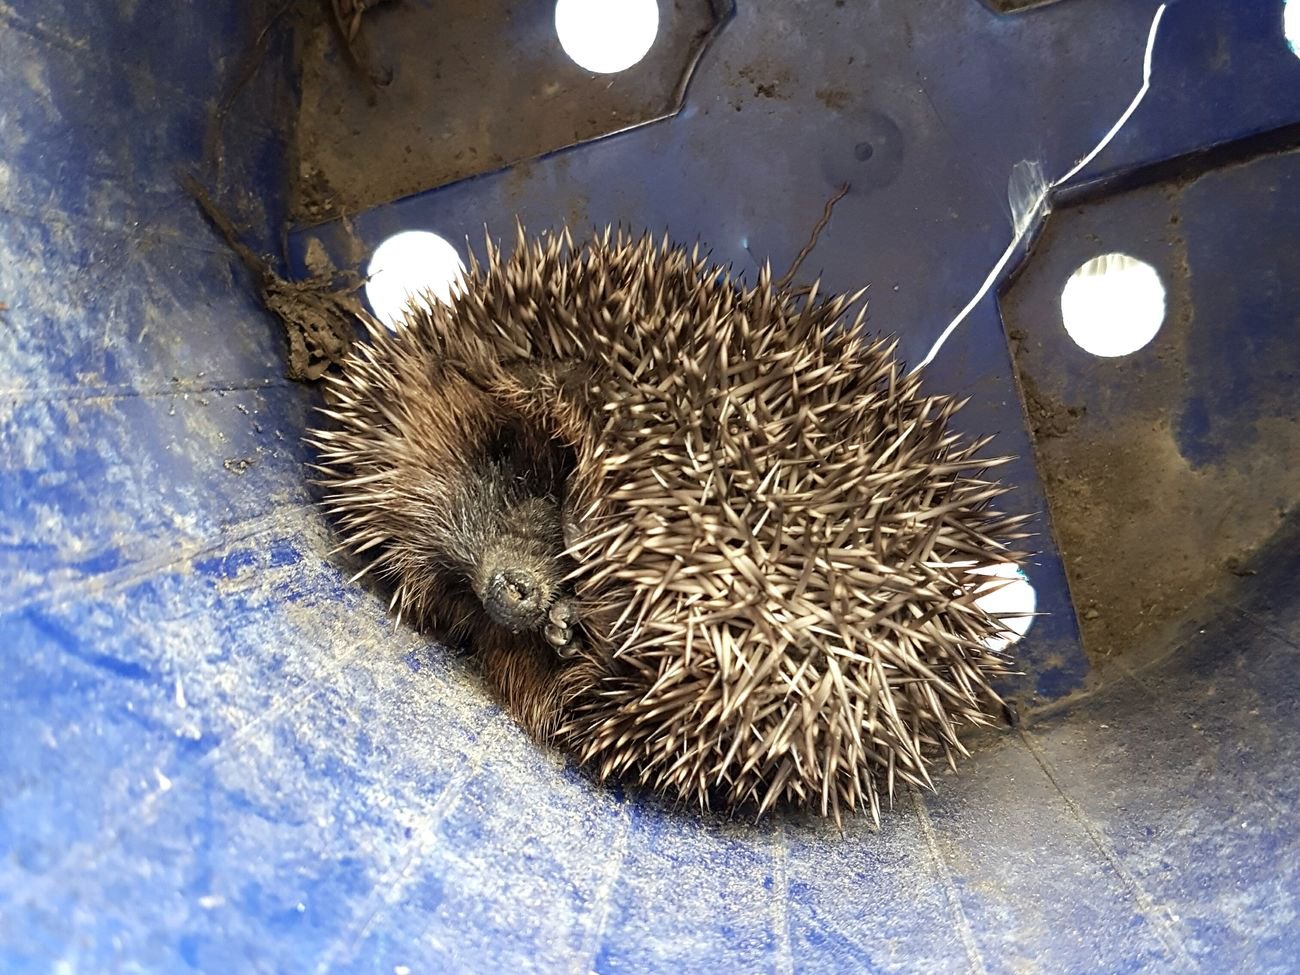 Finding shelter No People Close-up Indoors  Animal Themes Day Hedgehog Baby Baby Animal Curled Up Cozy Garden Nature Outdoors One Animal Beauty In Nature Fragility